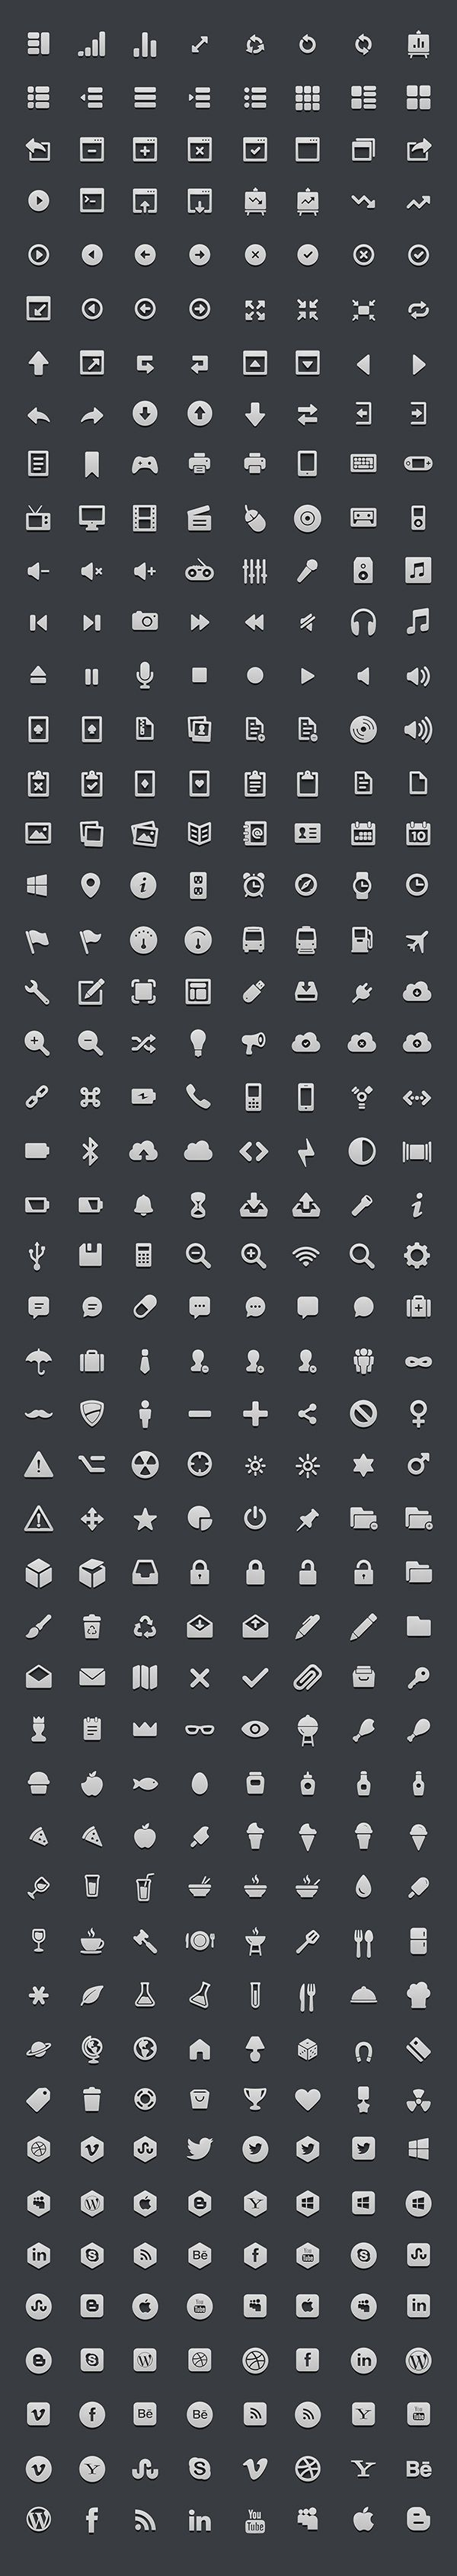 Free 364 High-res 3D Icon Set